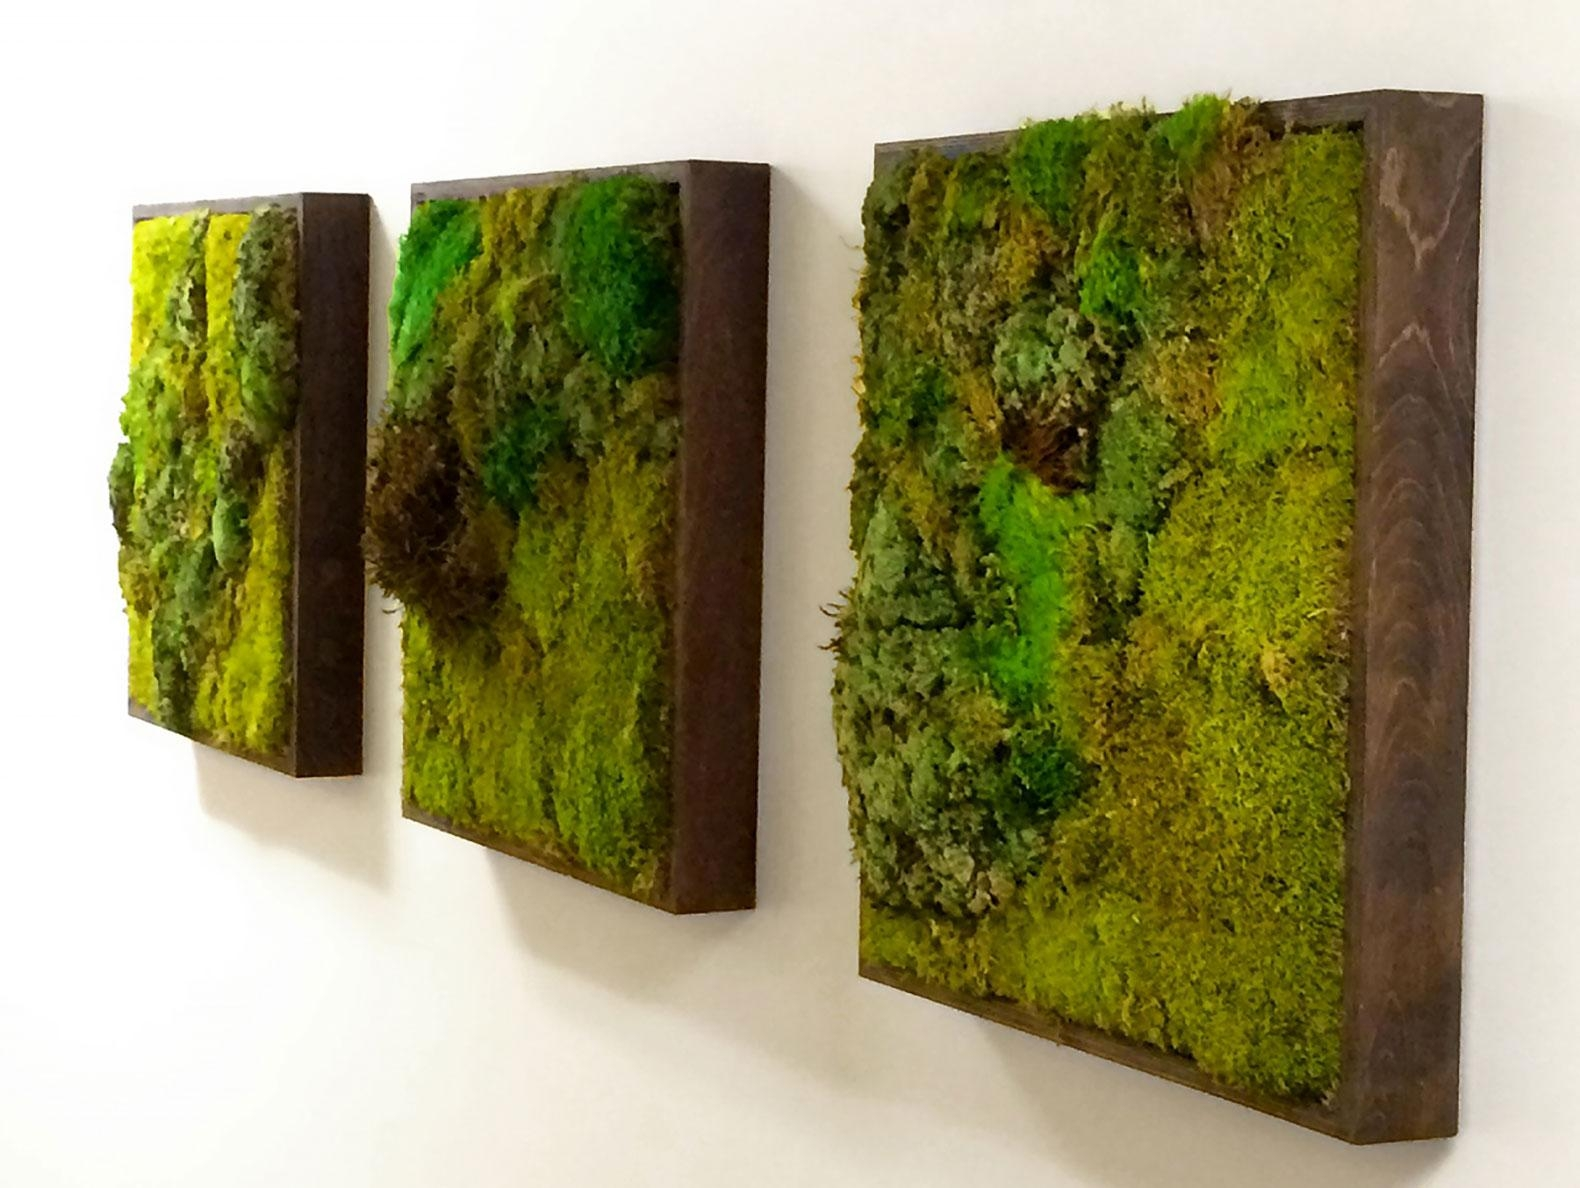 Appealing Artificial Green Wall Panels Wall Art Excellent Kitchen With Regard To Lime Green Metal Wall Art (Image 2 of 20)